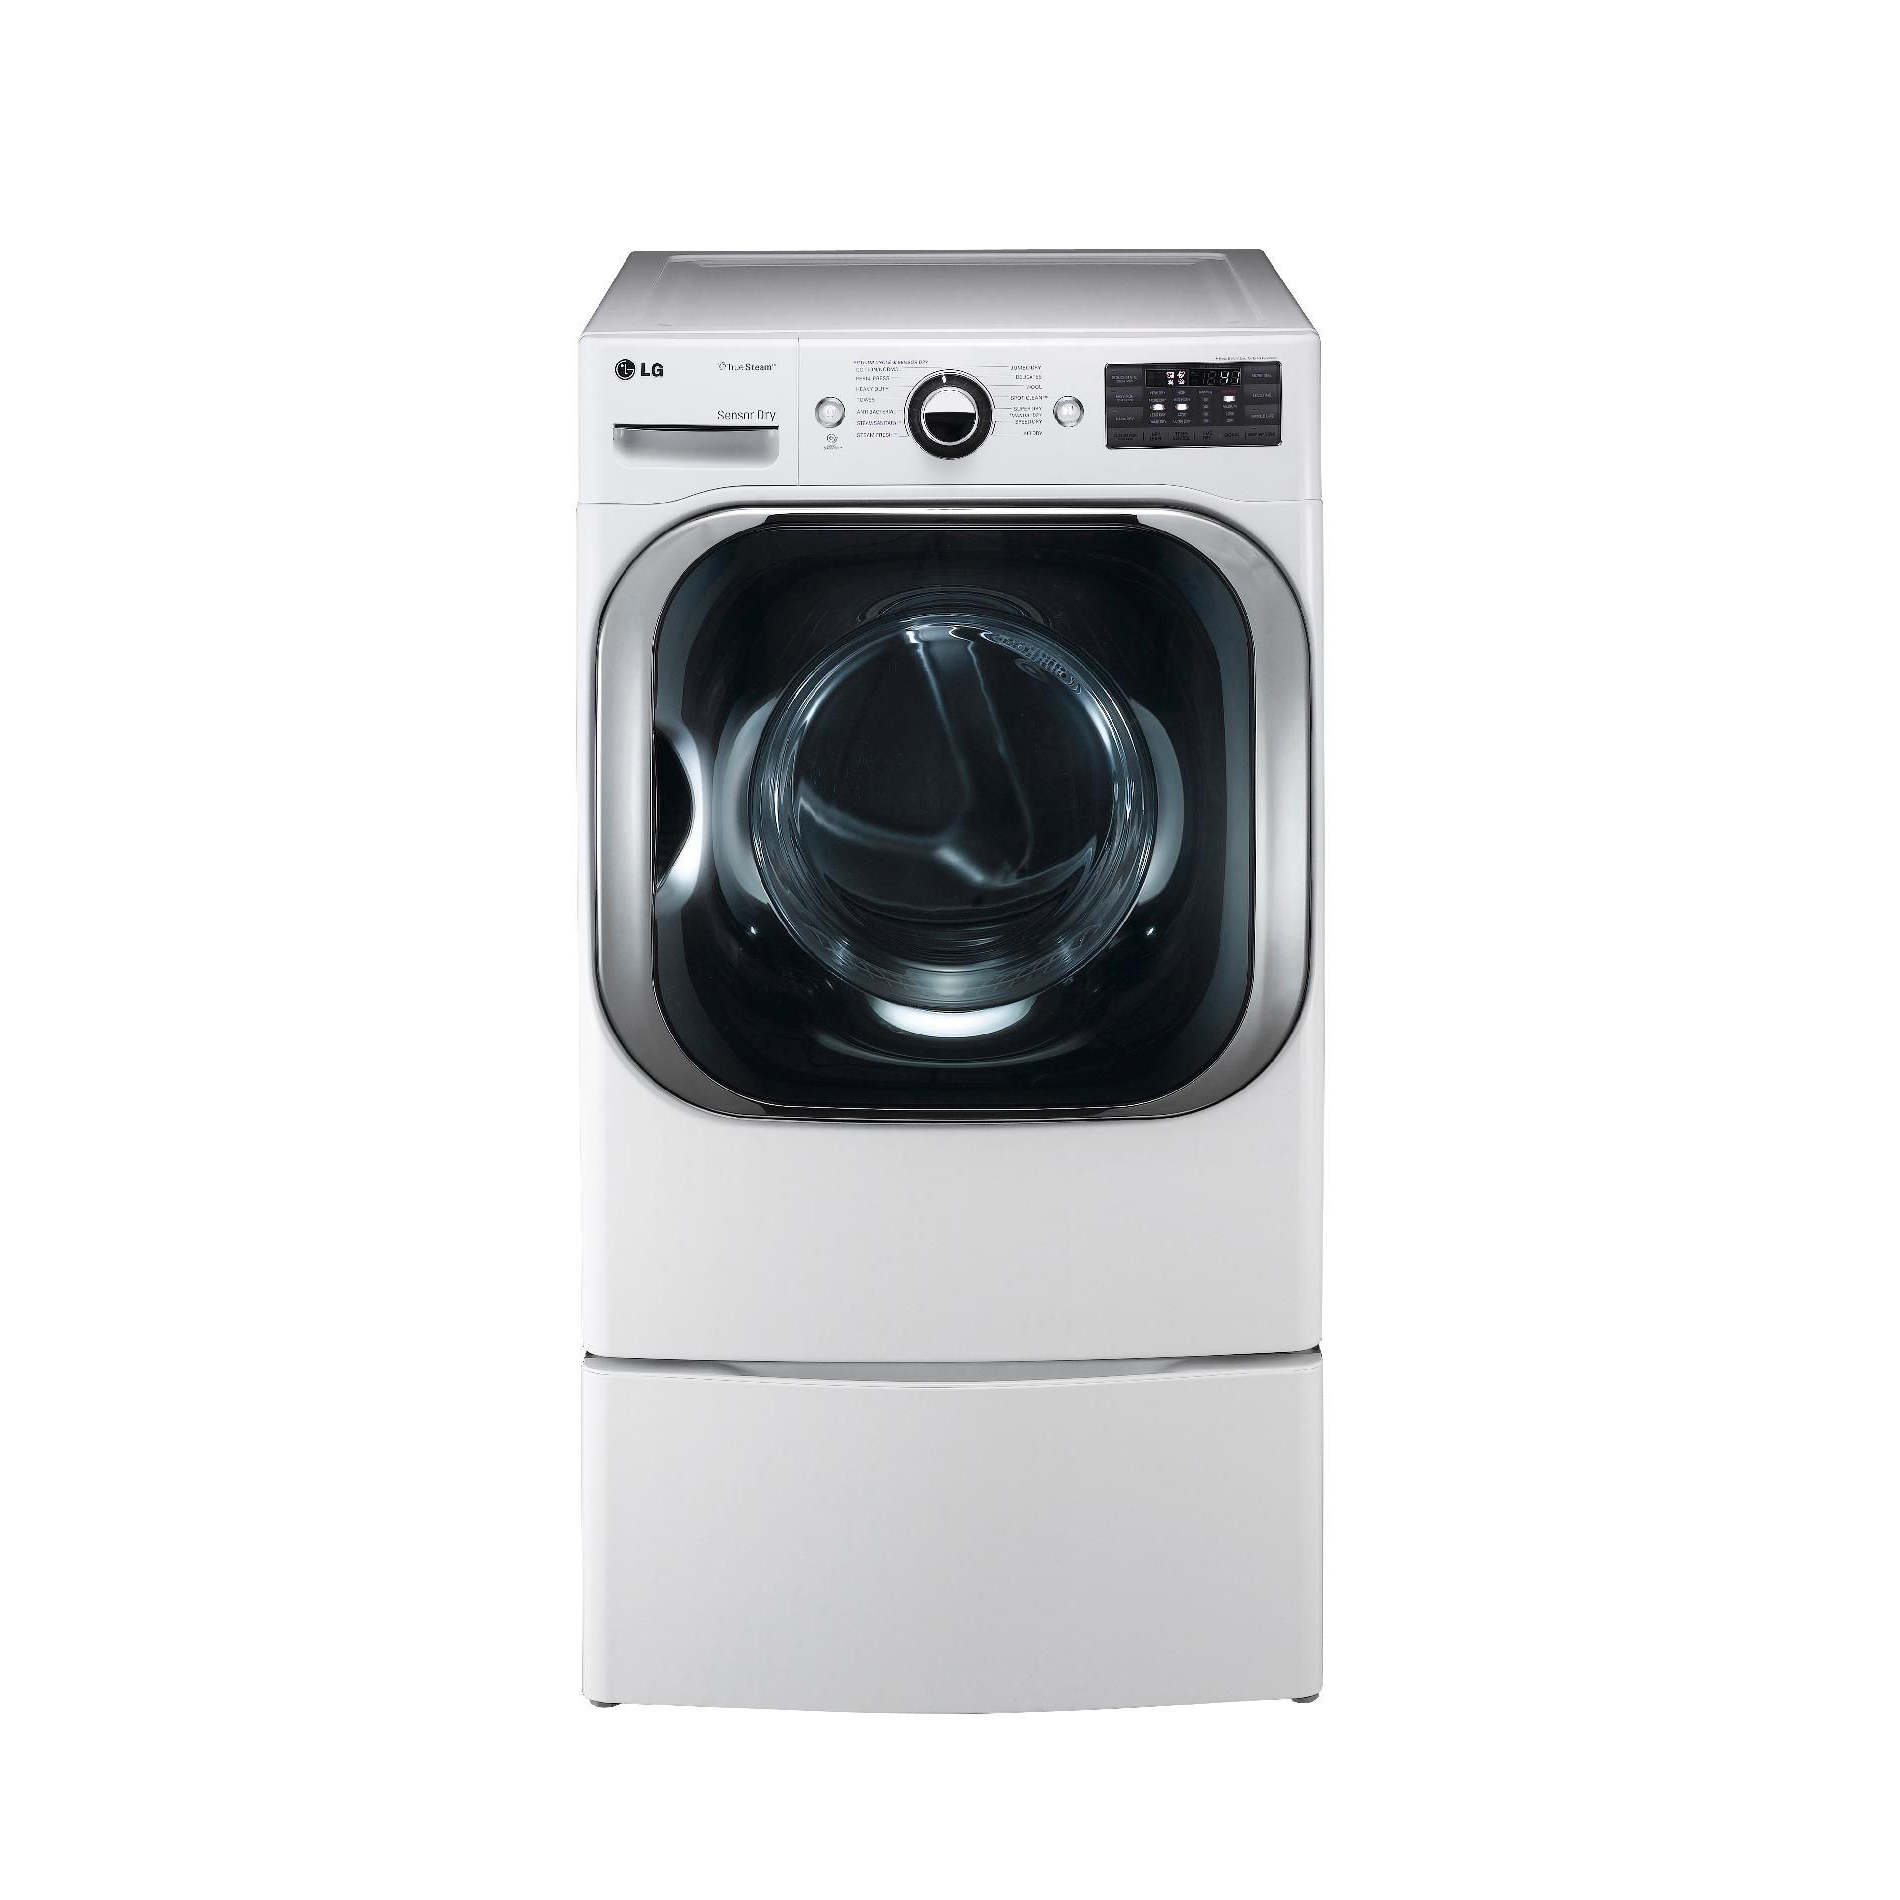 LG DLEX8000W 9.0 cu. ft. Mega-Capacity Steam Electric Dryer w/ Sensor Dry - White